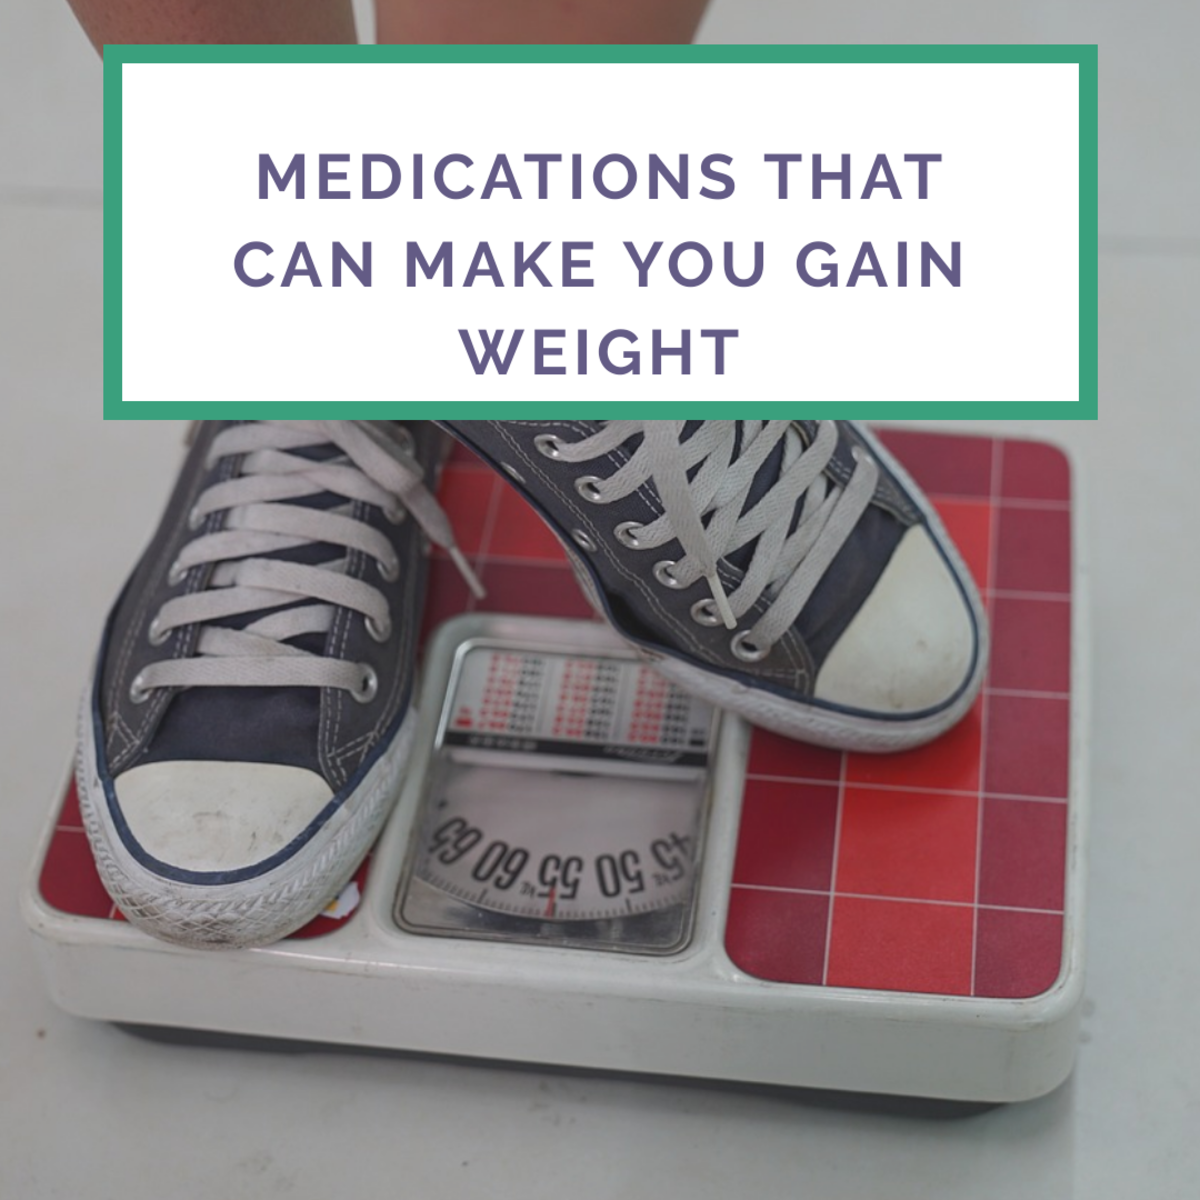 Certain medications can cause a weight gain of 10 pounds or more in an individual